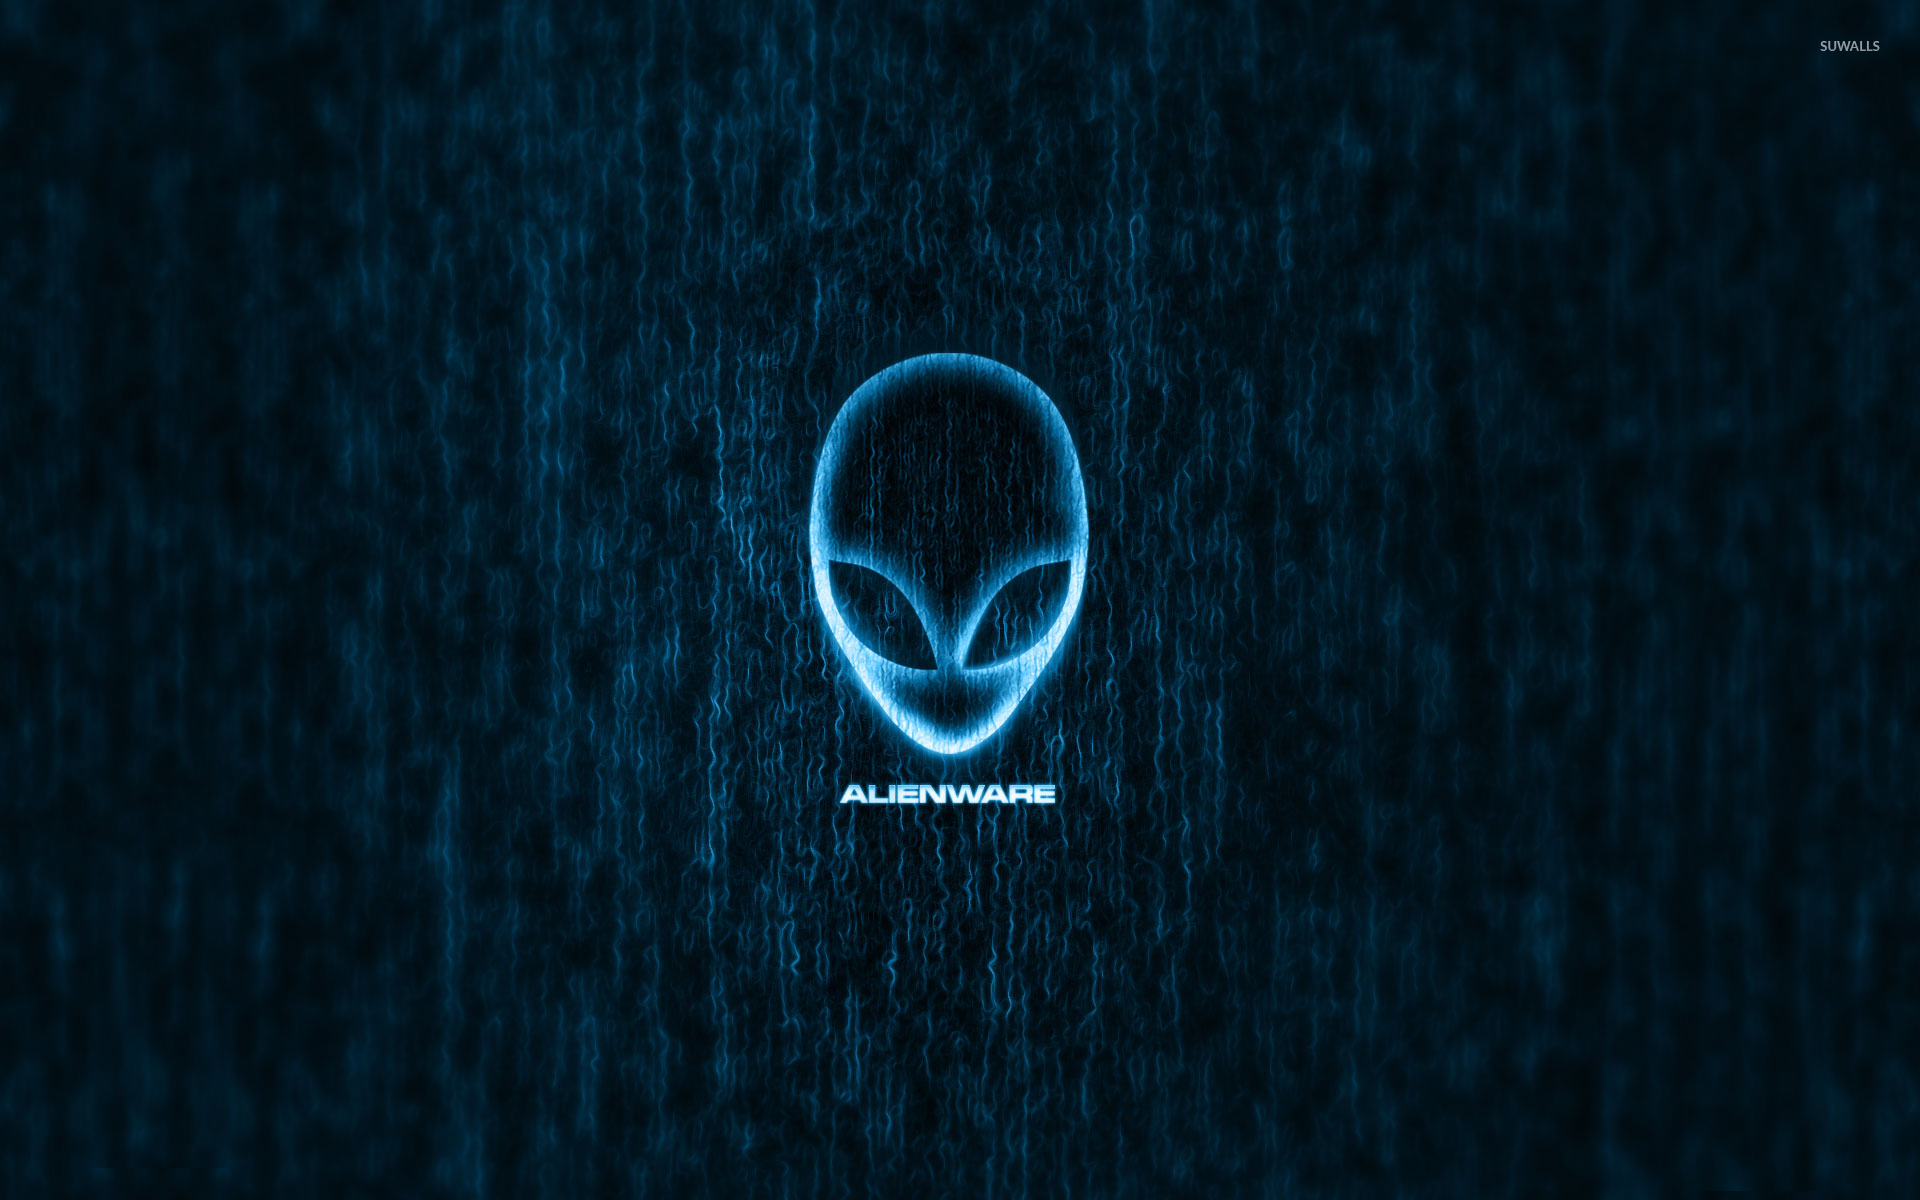 alienware [9] wallpaper - computer wallpapers - #5407